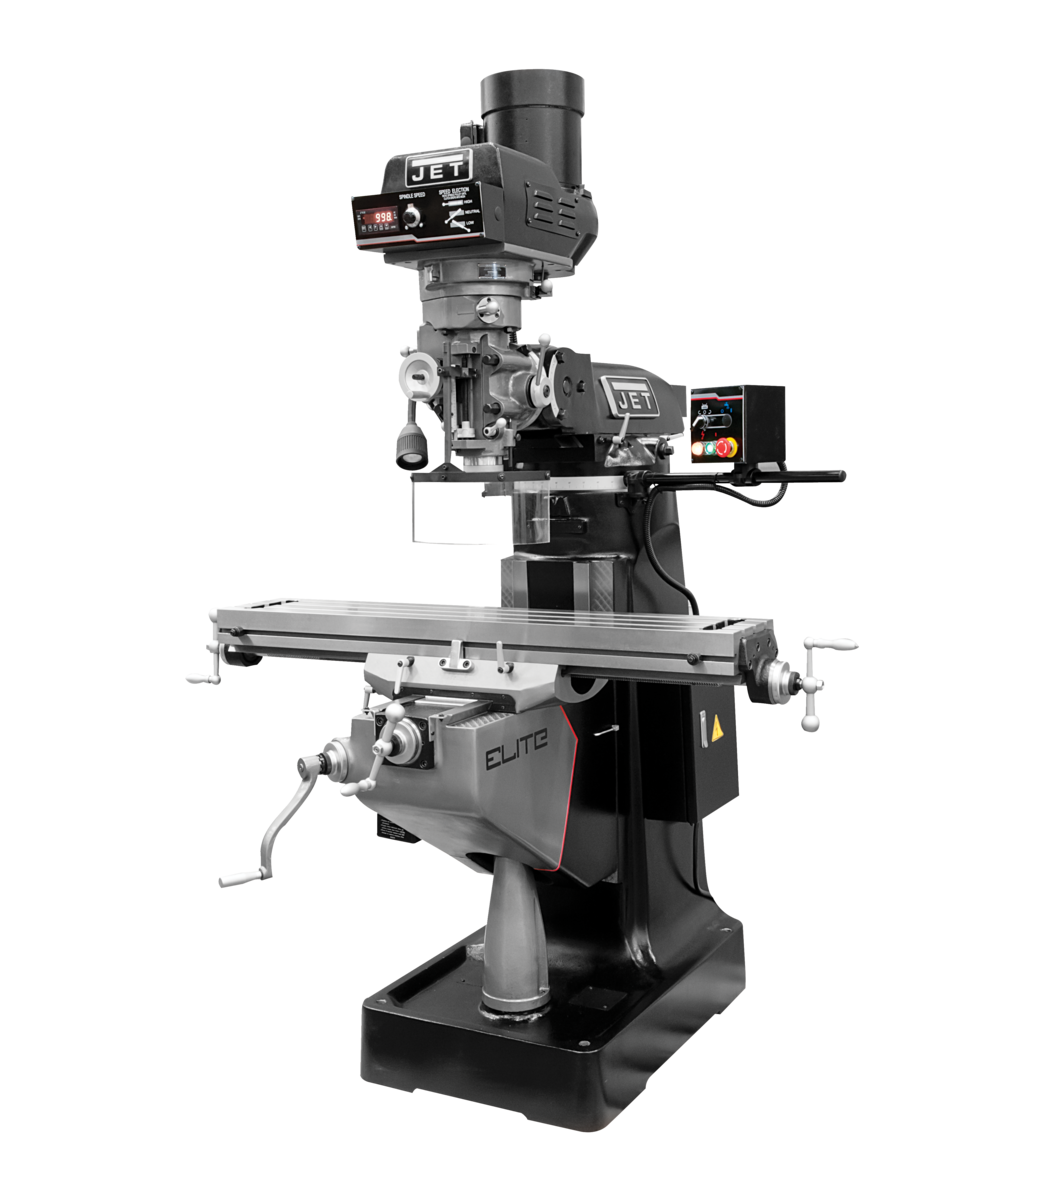 EVS-949 Mill with 3-Axis Newall DP700 (Quill) DRO and Servo X, Y, Z-Axis Powerfeeds